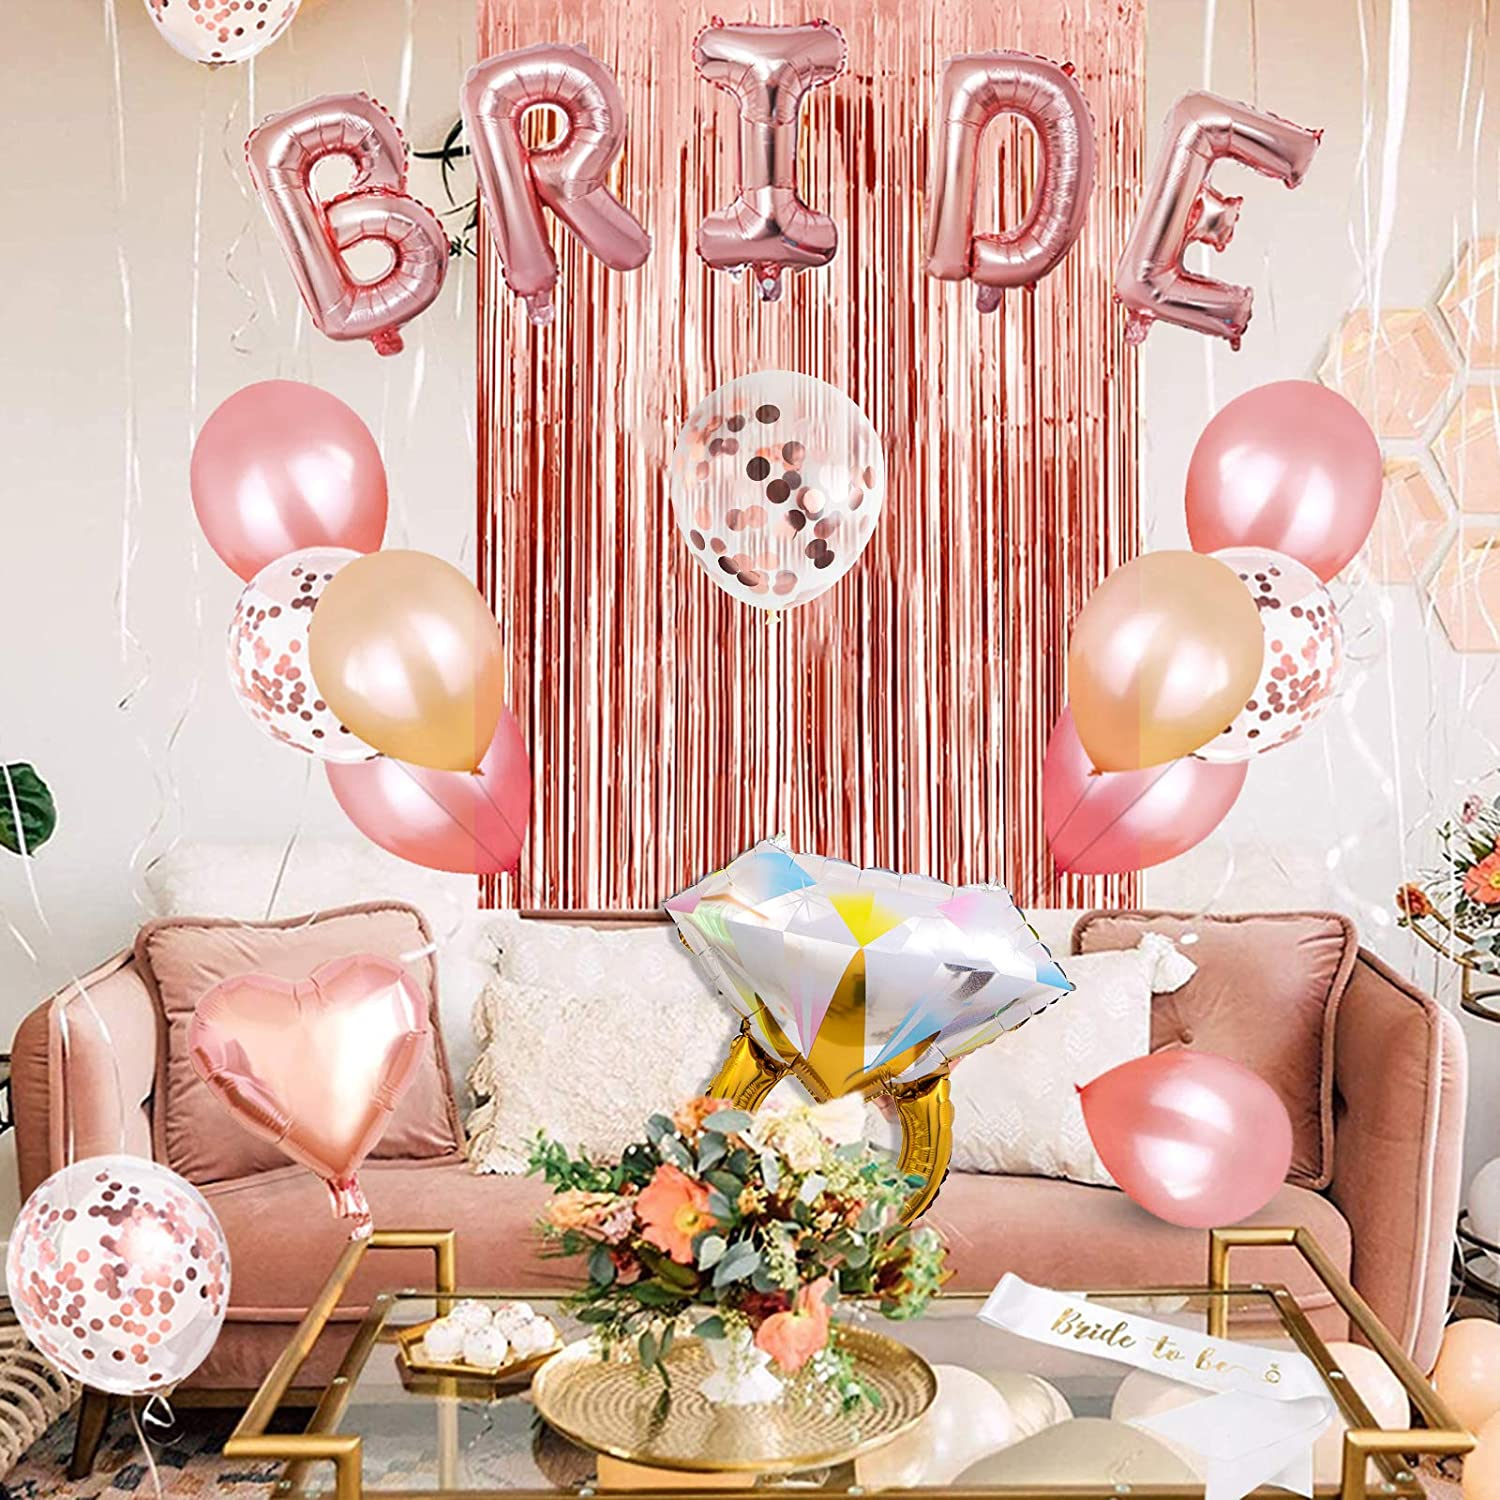 Curtains Rose Gold Bridal Shower Supplies Hen Party Decor BRIDE Foil Banner Wedding Confetti Diamond Balloons Sash Naughty Photo Props Bachelorette Party Decorations With Table Runner